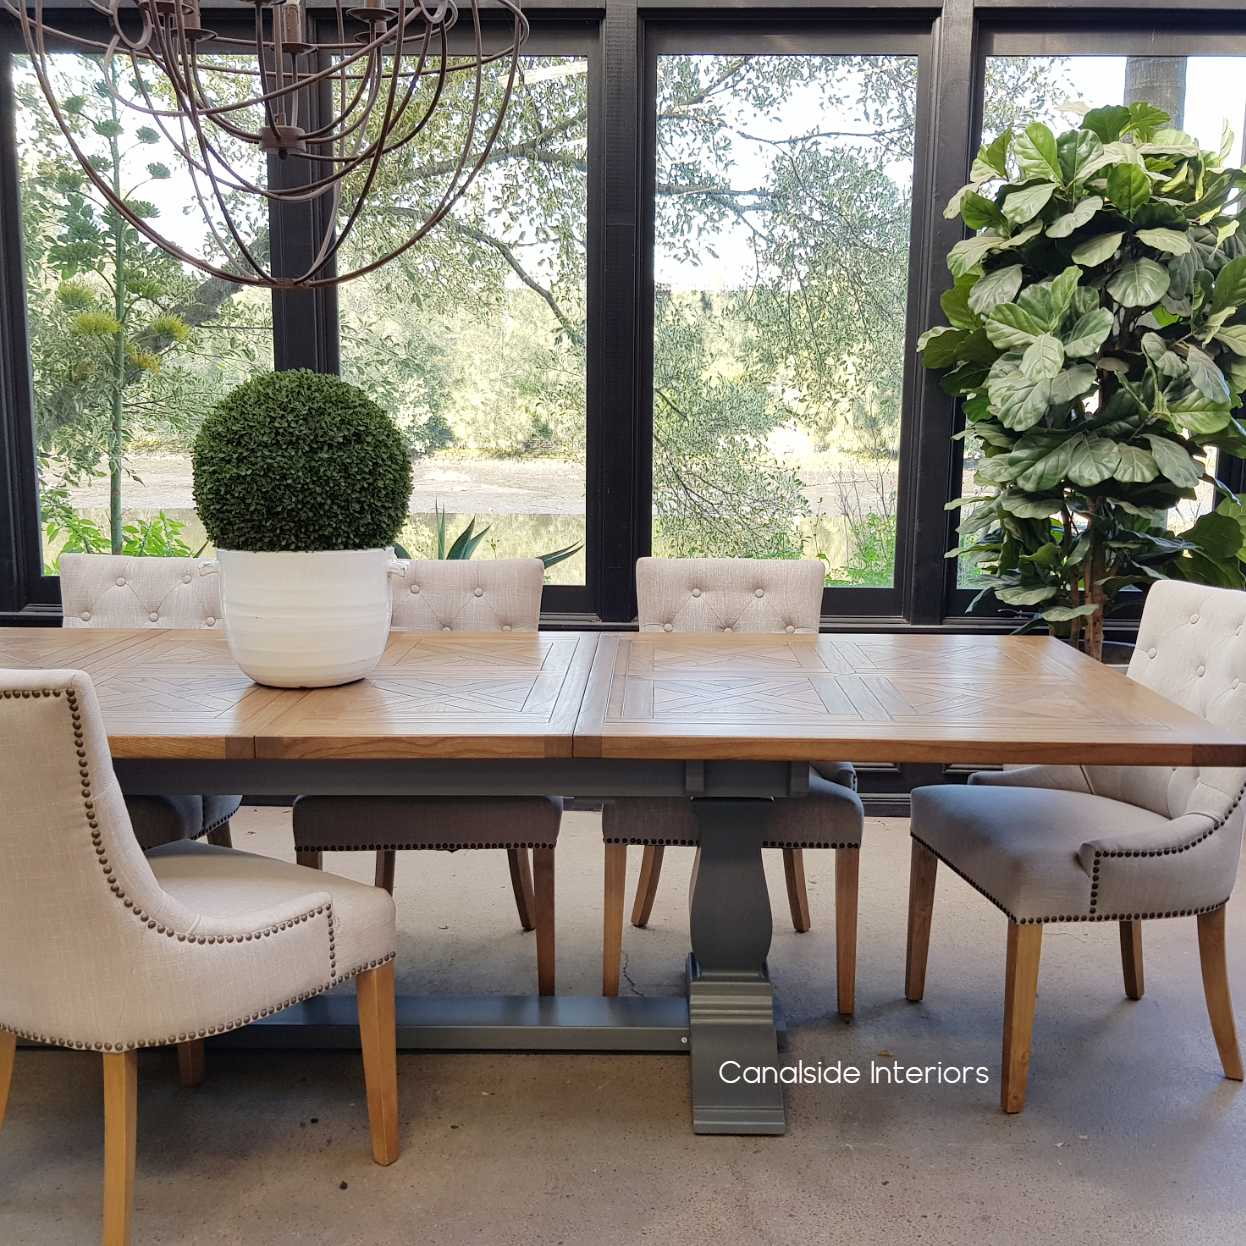 Stamford Parquetry Double Extension Dining Table Grey Base tables, extension tables, hamptons, hamptons table, provincial, plantation, dining tables, trestle base, dining room